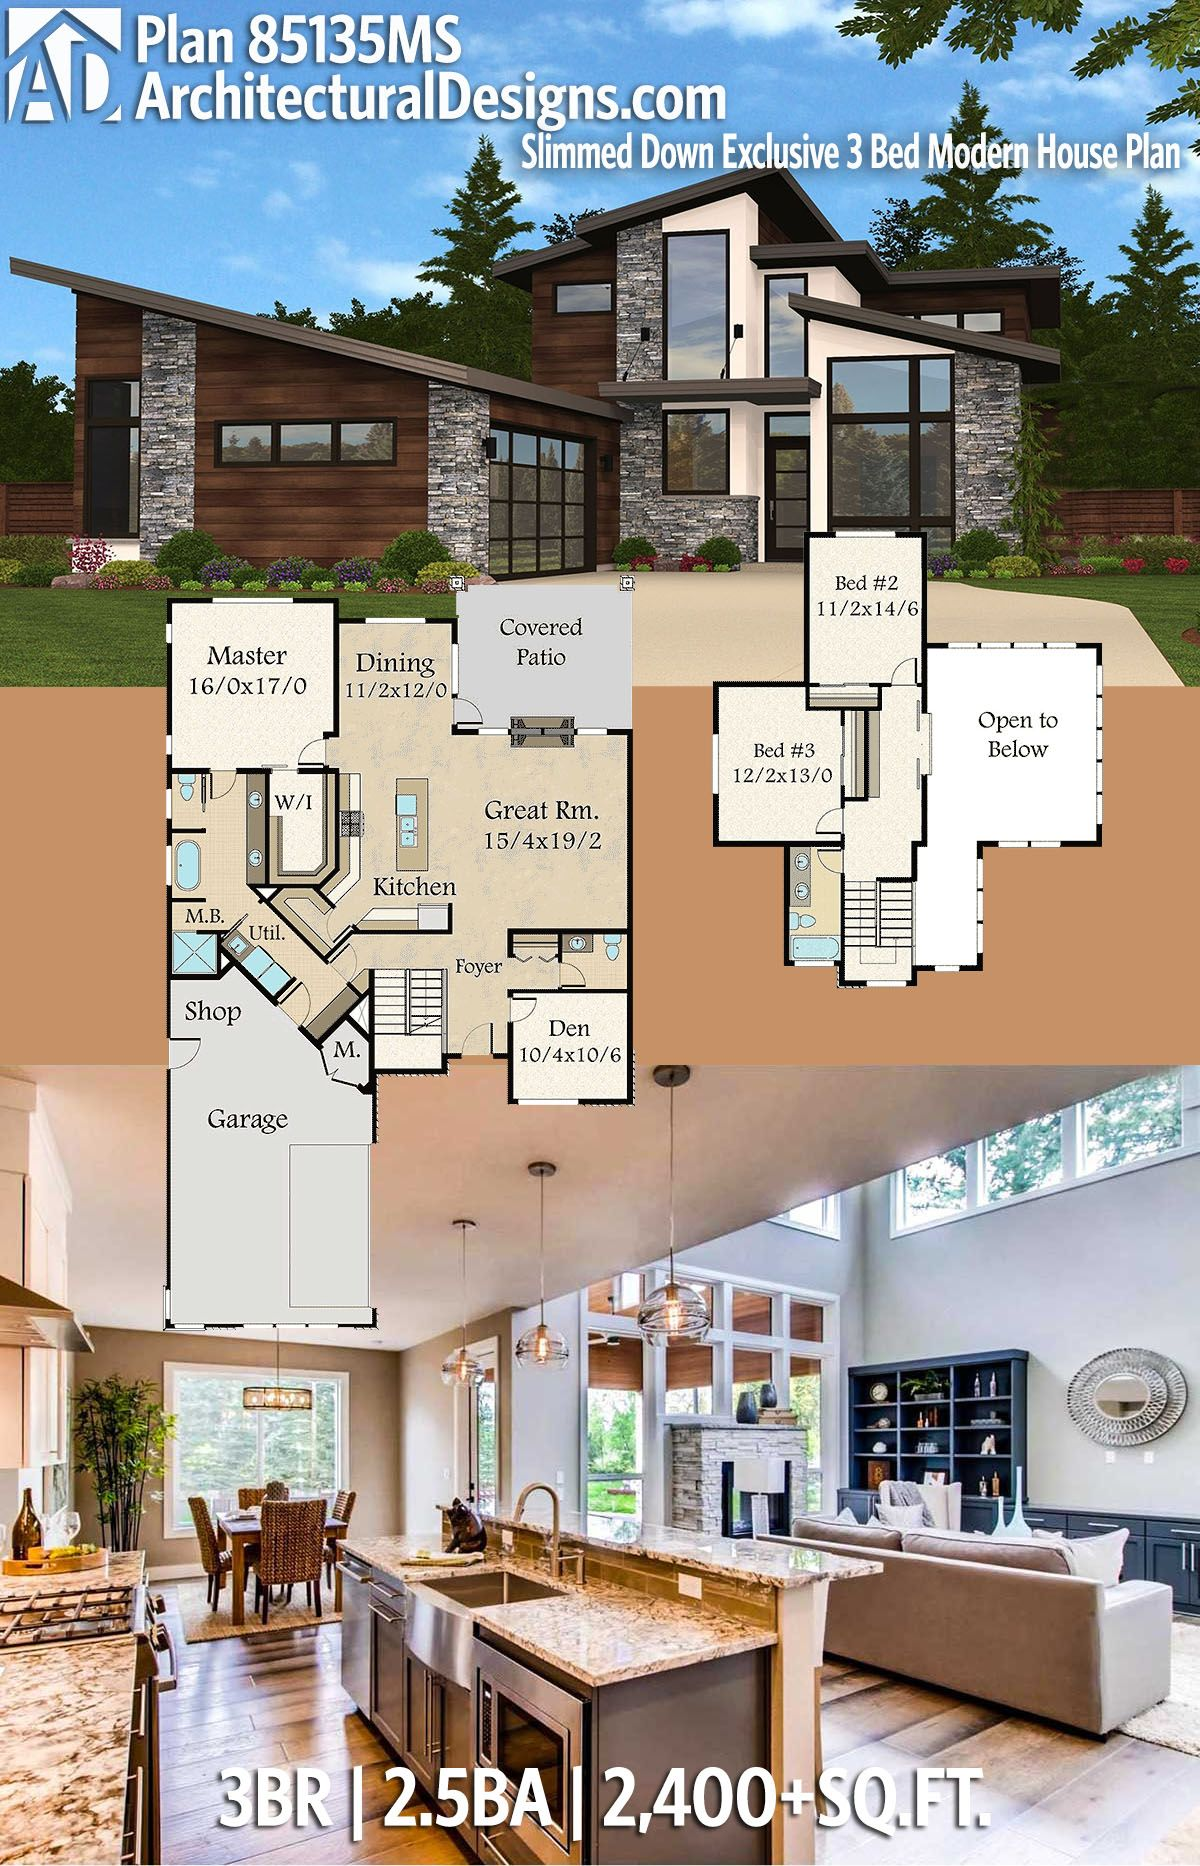 DesertRoseArchitectural Designs Exclusive House Plan 85135MS has